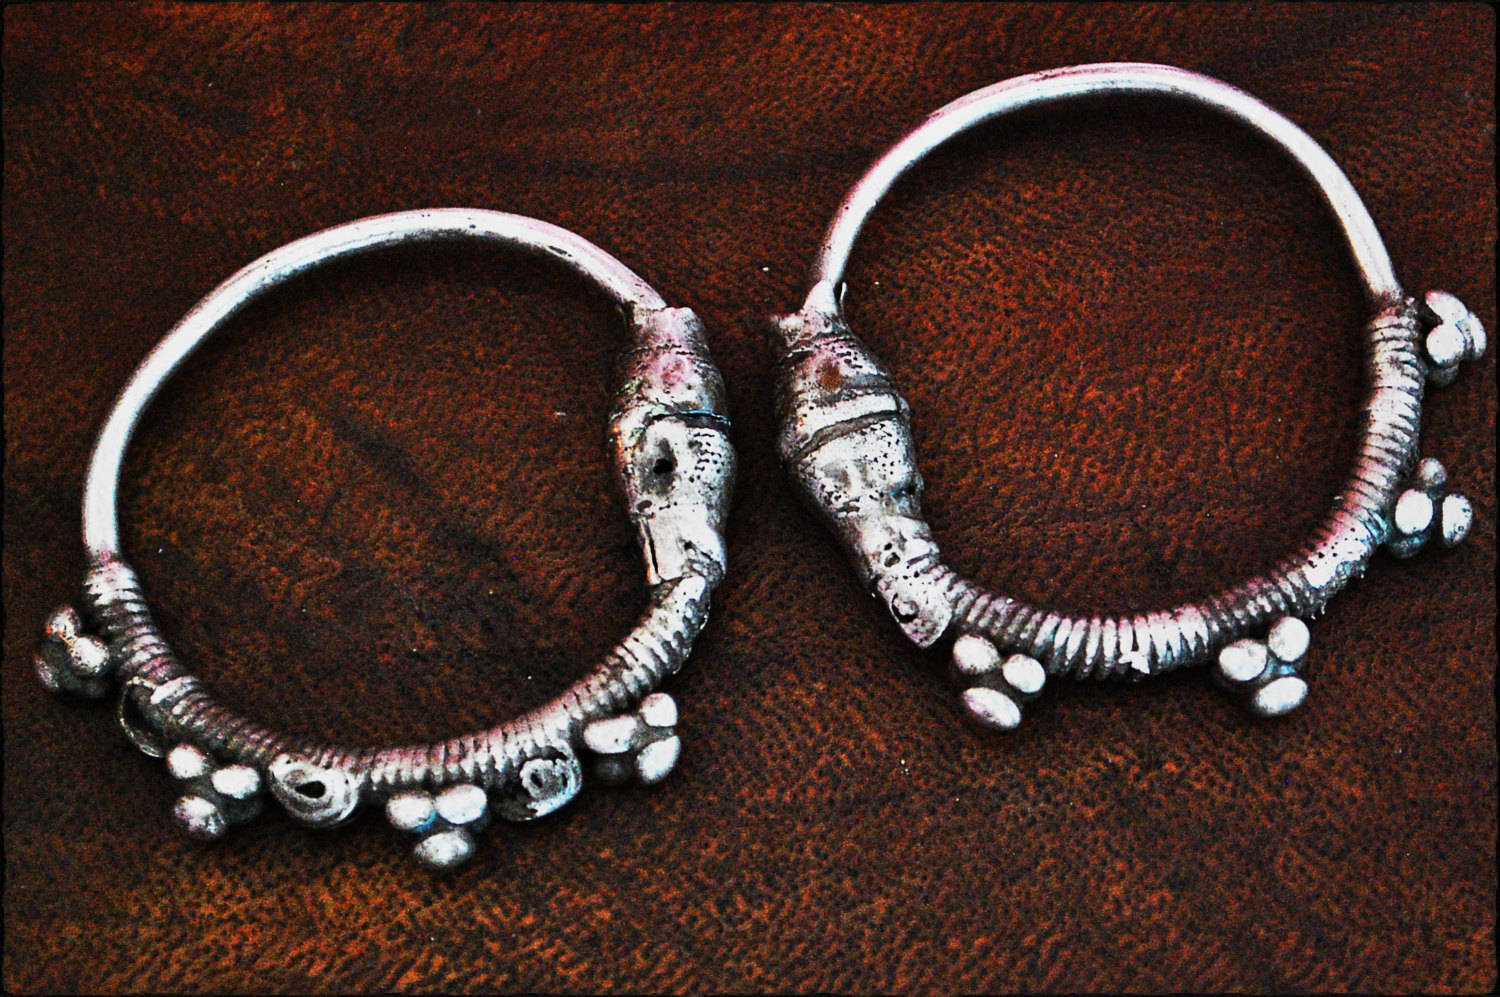 Antique Oman Bedouin Hoop Earrings - Tribal Hoop Earrings - Omani Silver Hoop Earrings - Yemen Hoop Earrings - Gauged Hoop Earrings